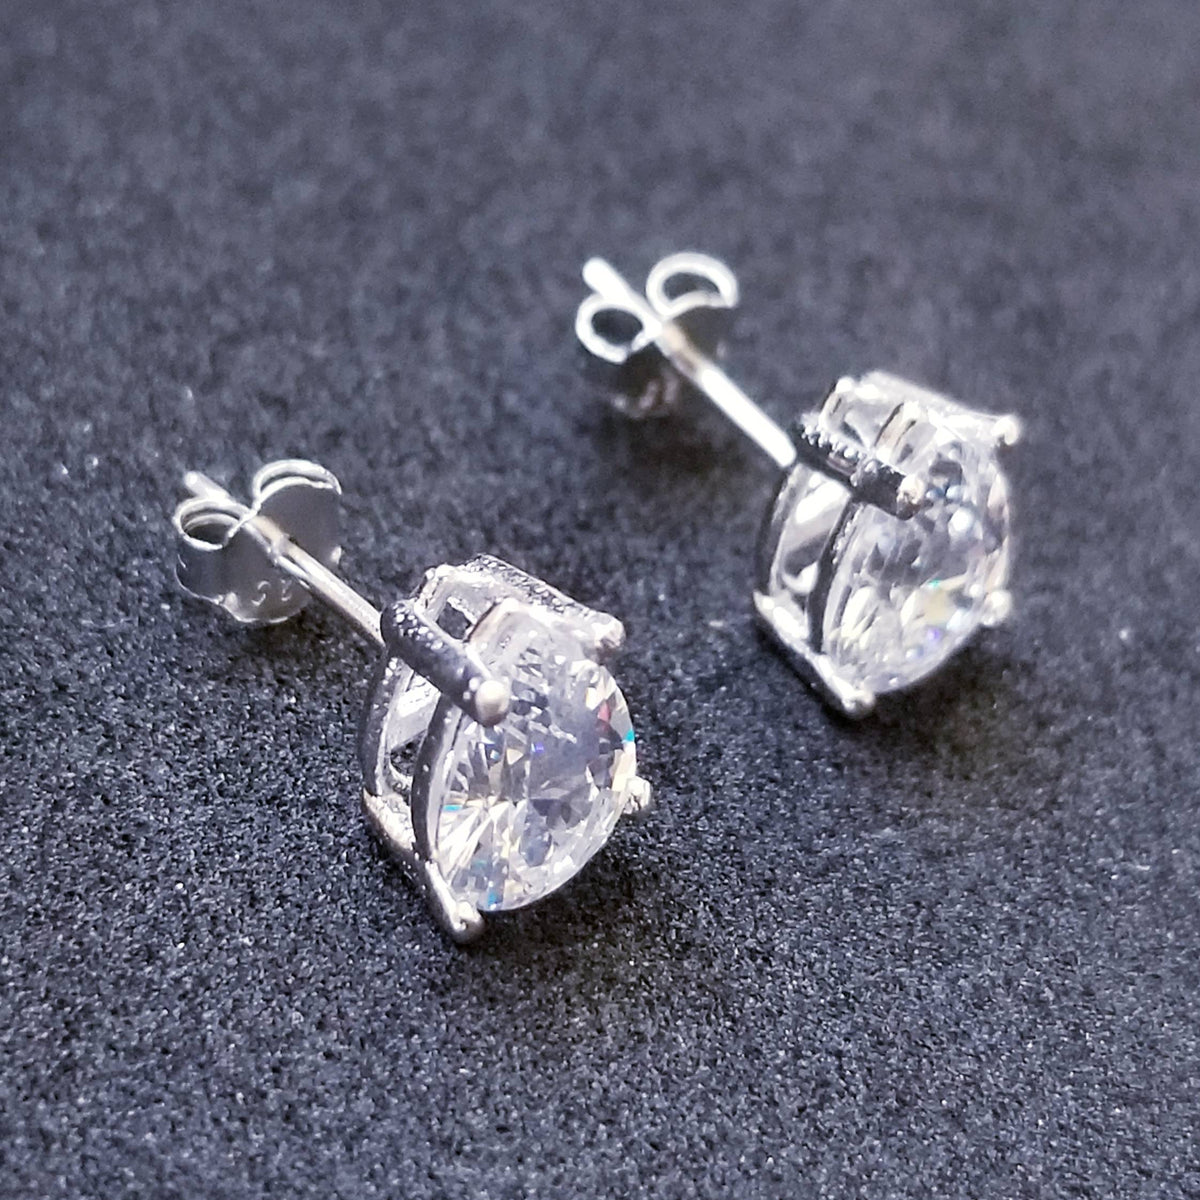 New 14K White Gold on 925 Sterling Silver Small Teardrop CZ Stone Earrings